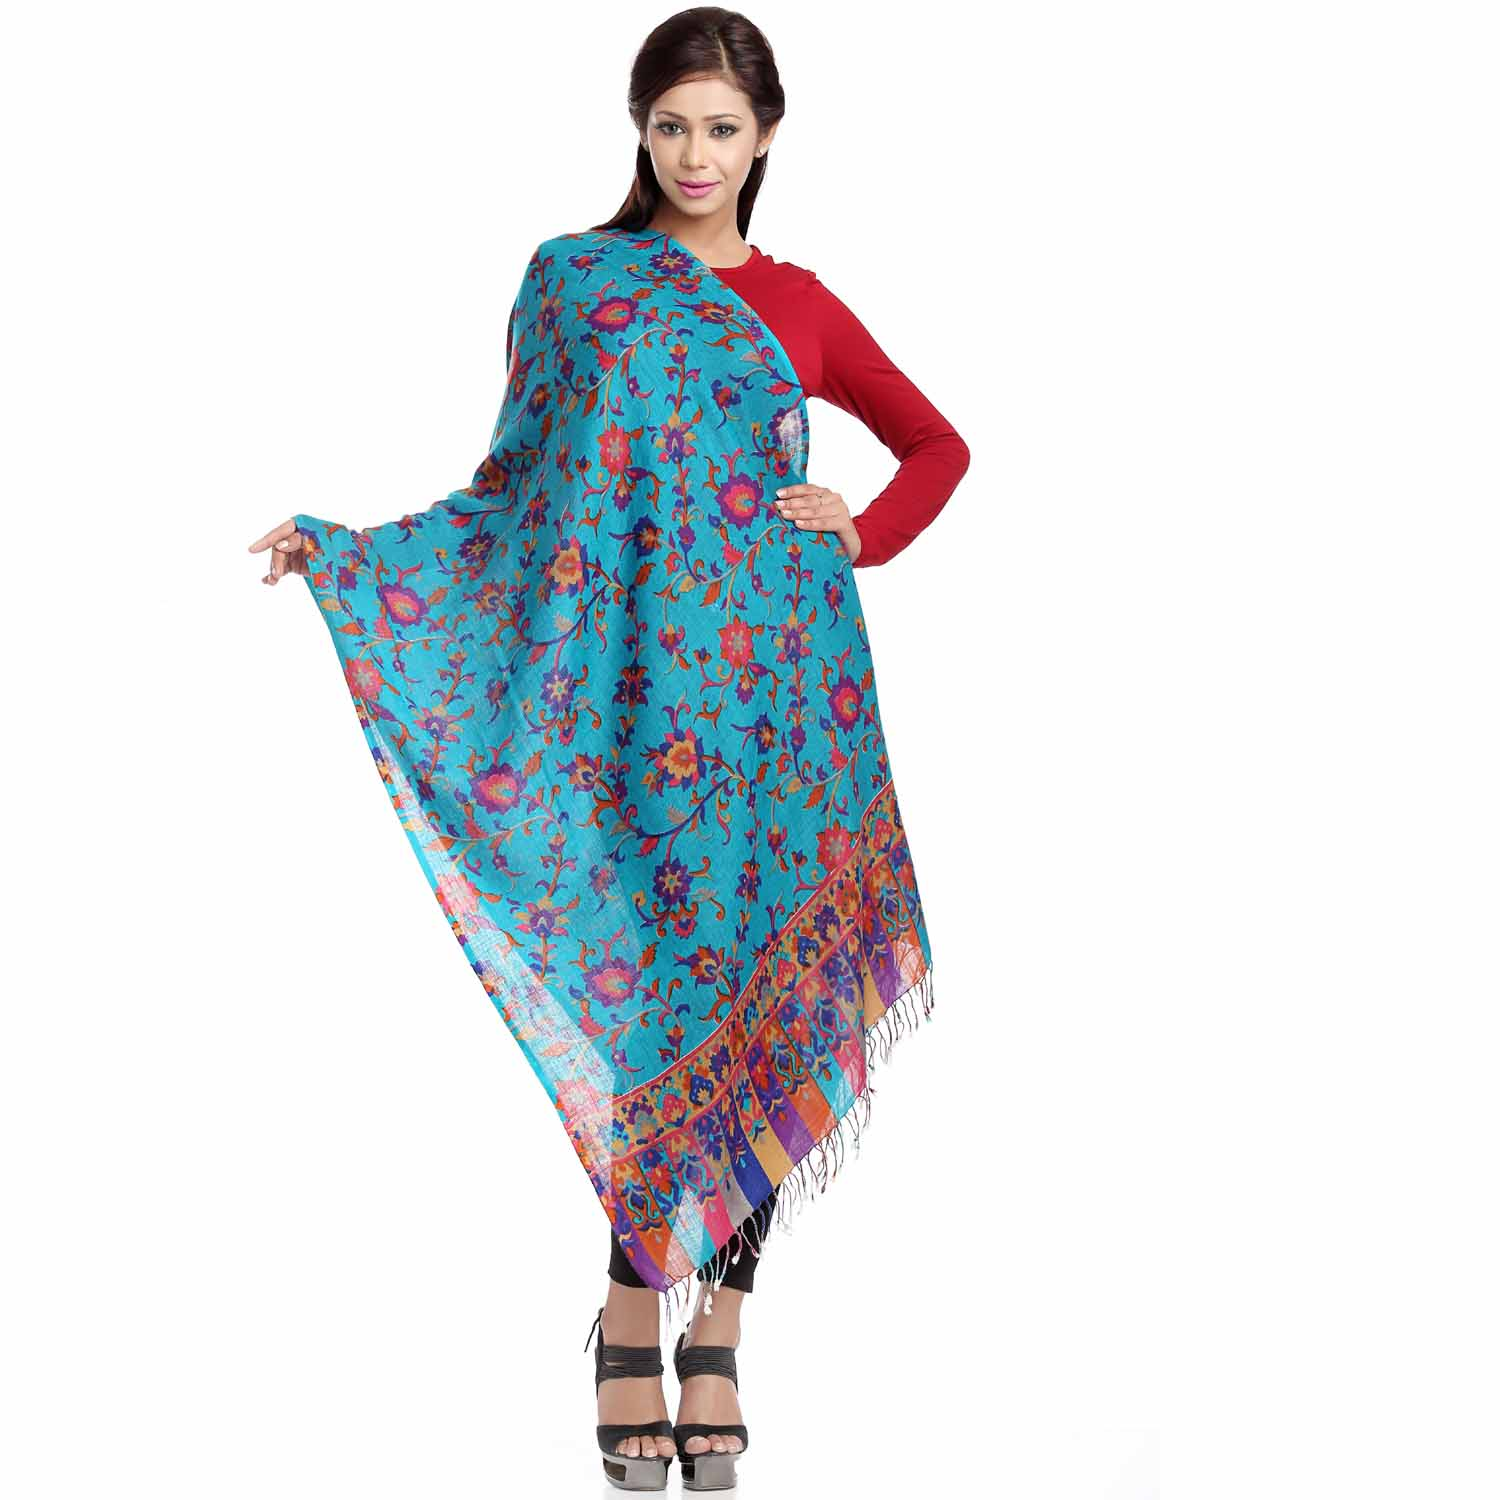 Floral Print and Embroidery Viscose Stole with Tassels